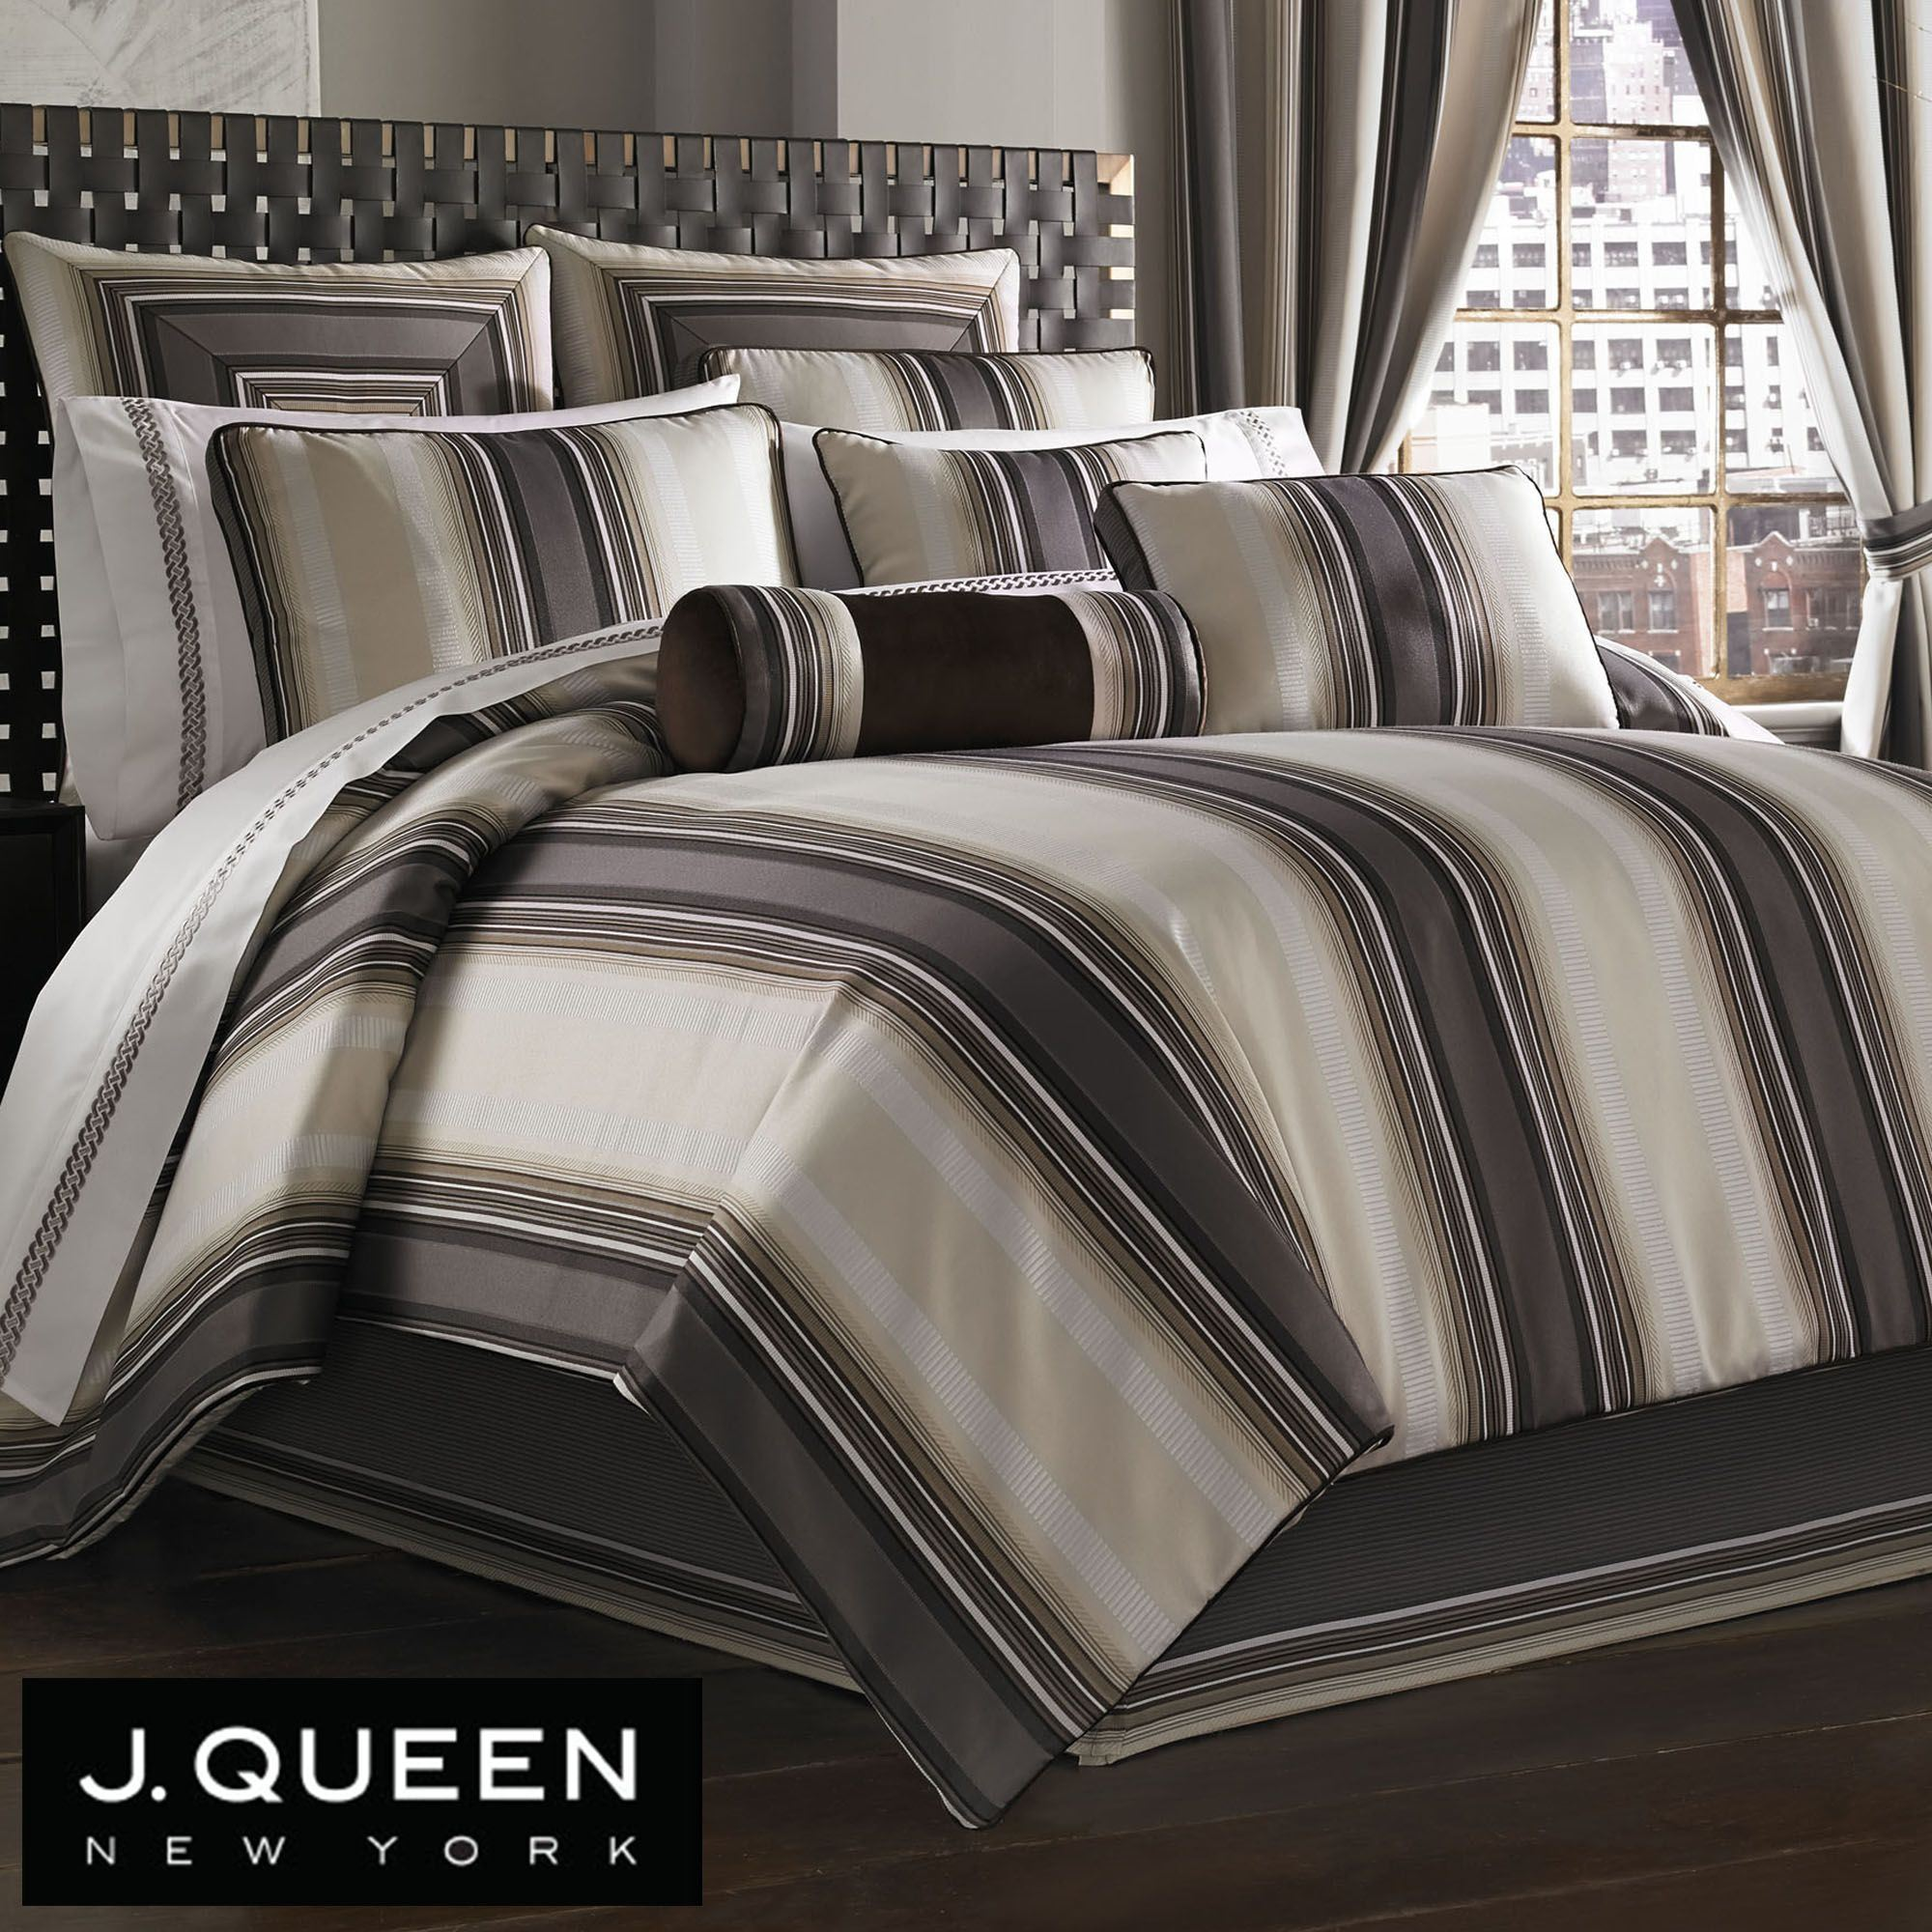 comforter detail striped of lace hob bedding linen bed stripe yellow by grey at head scion luxury